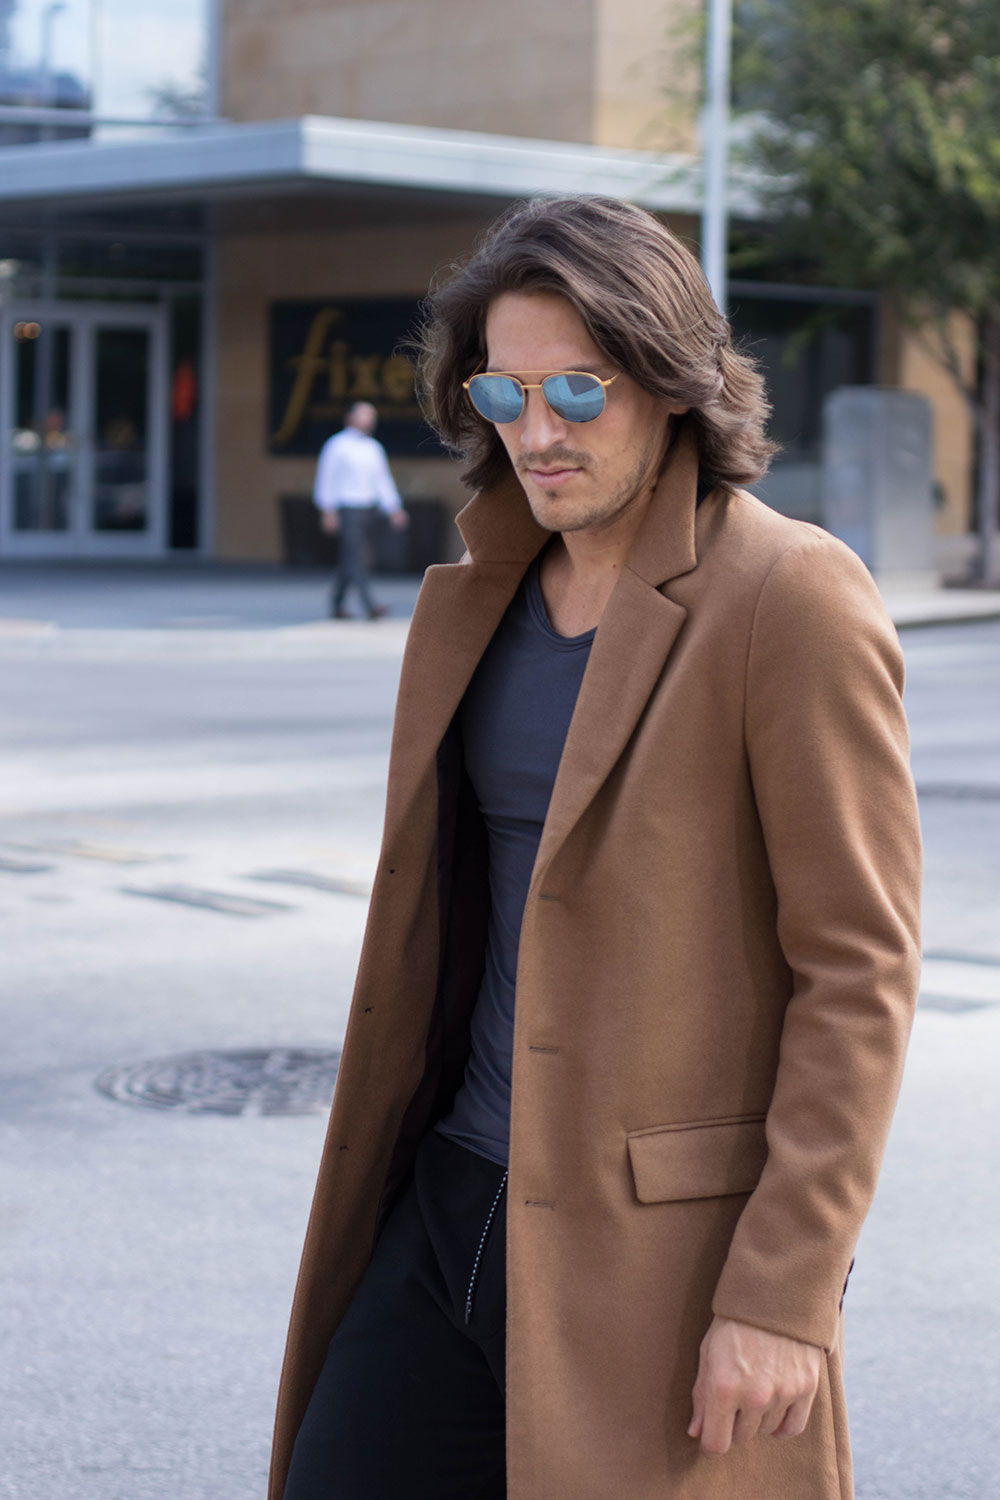 Mens Camel Overcoat with Grey Tee, Black Joggers and White Sneakers